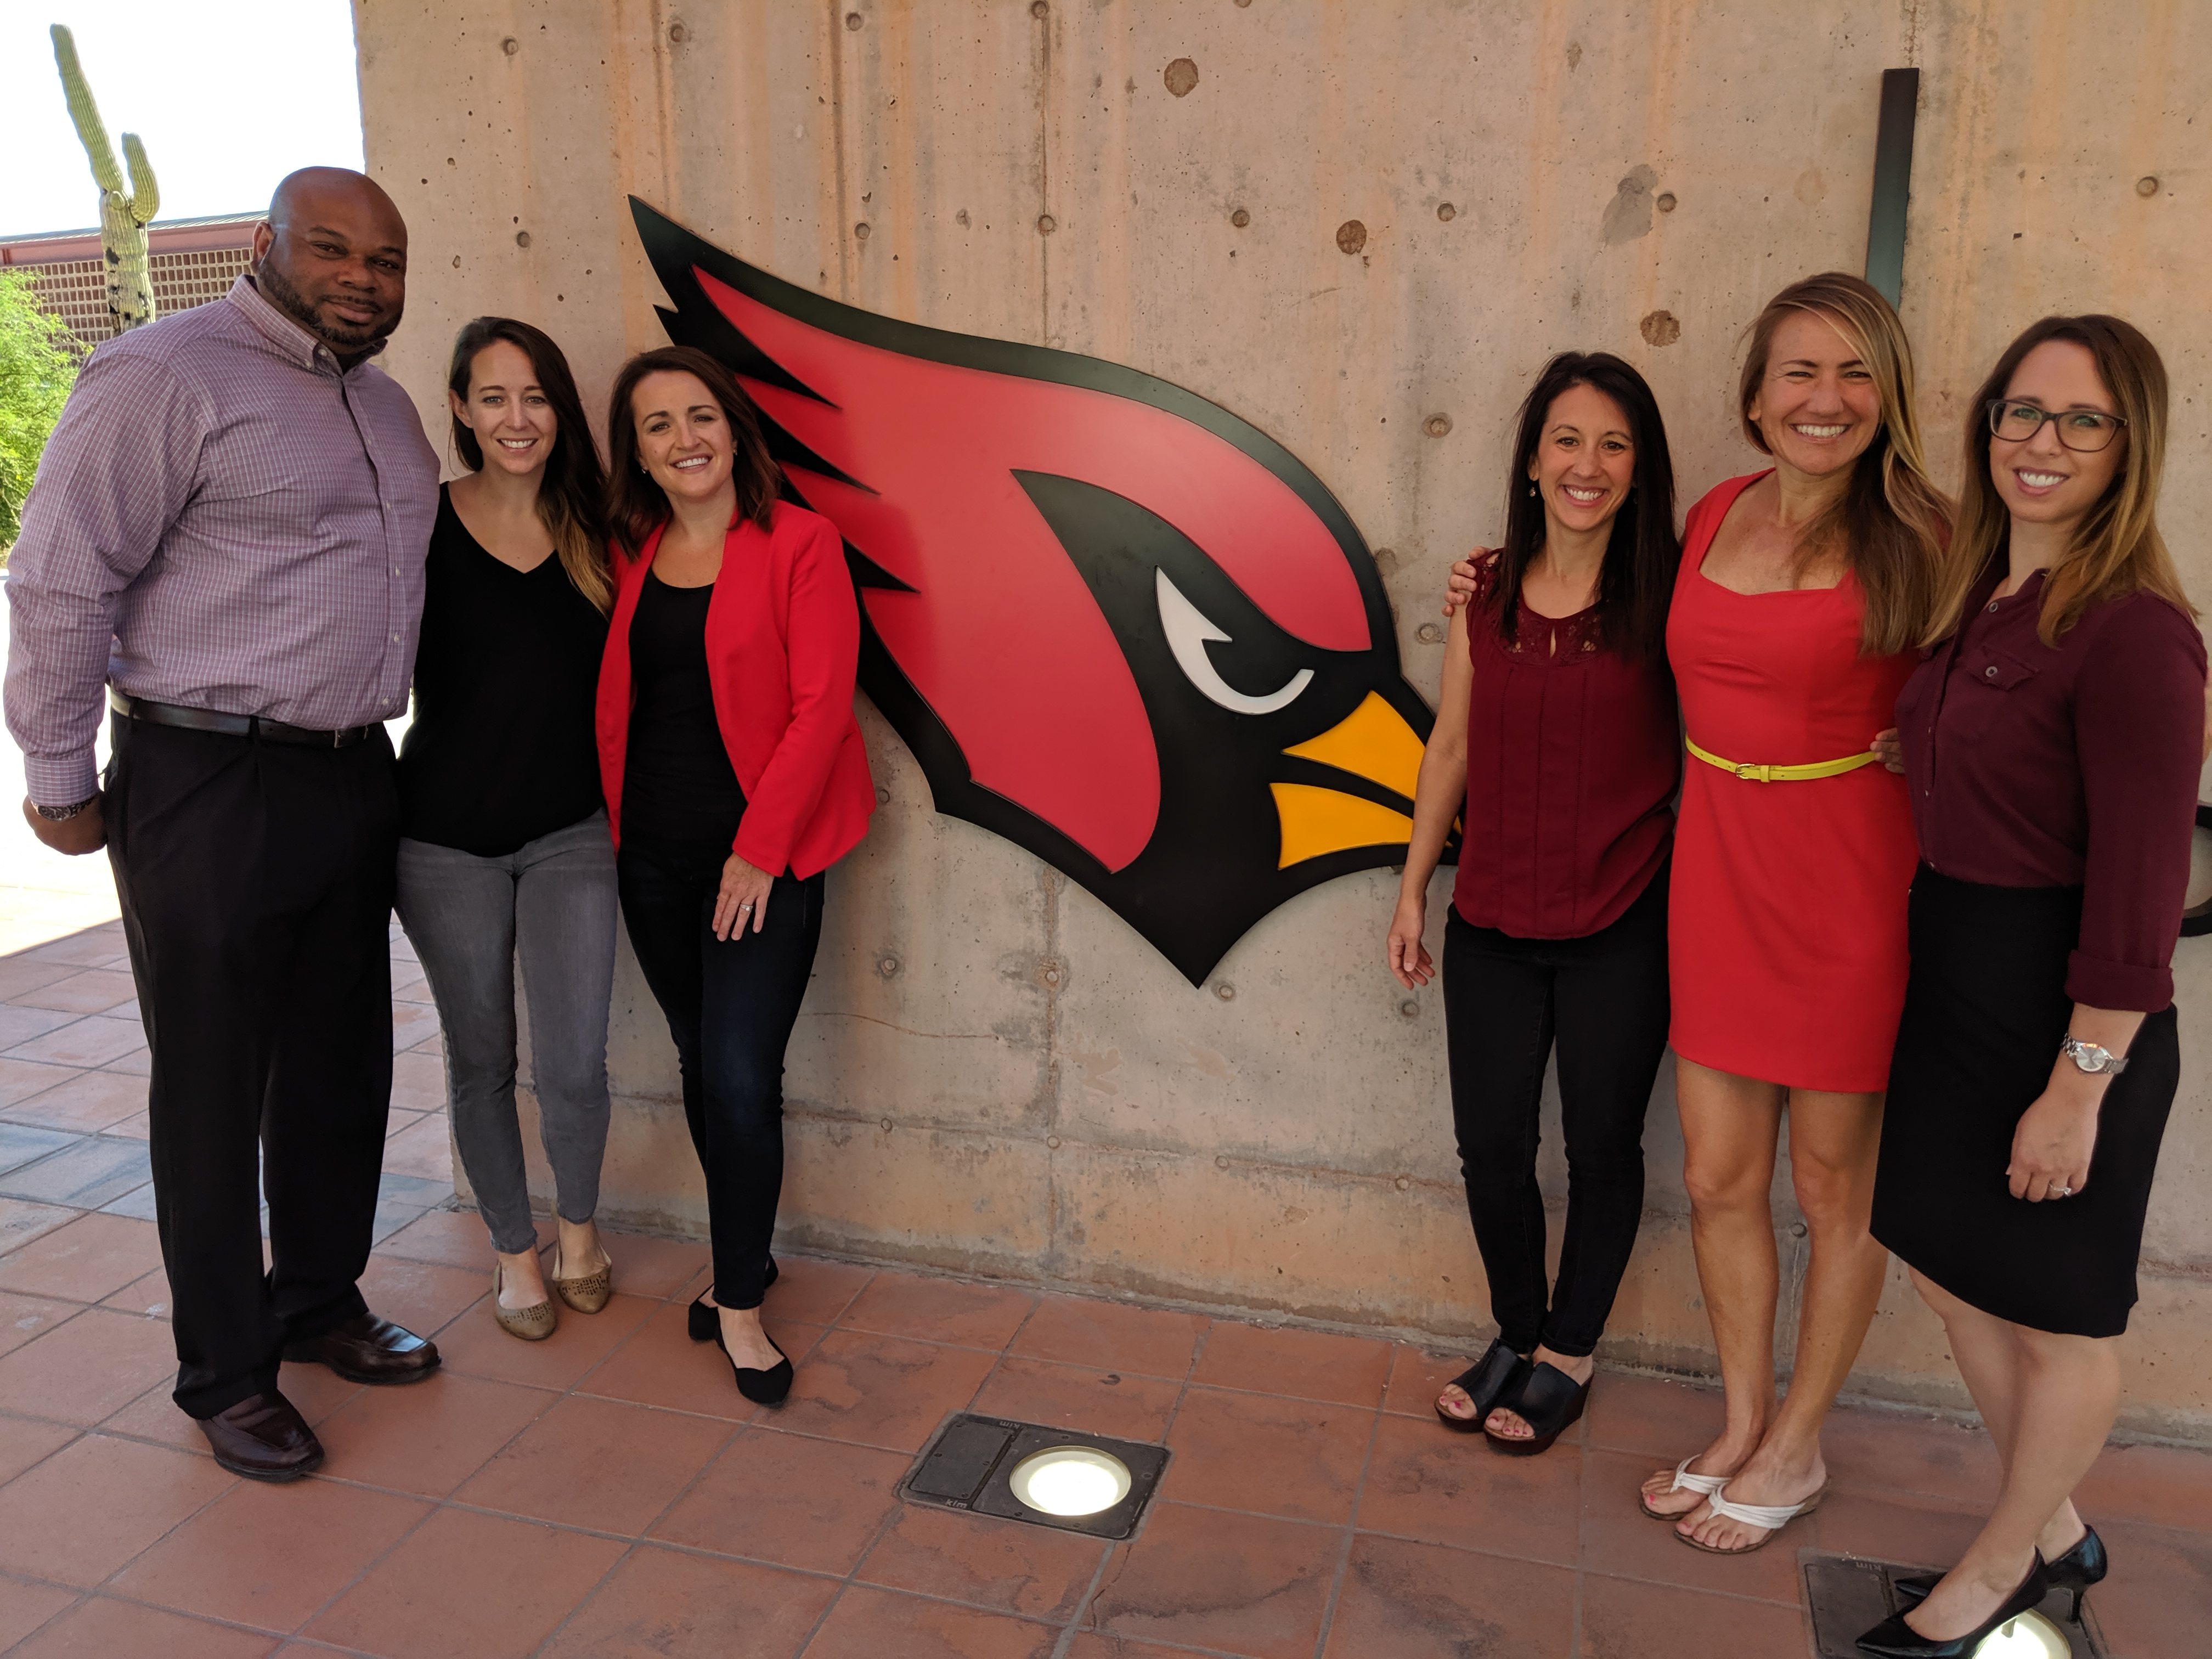 Arizona Justice Project staff members stand outside the Arizona Cardinals office next to the Cardinals logo.